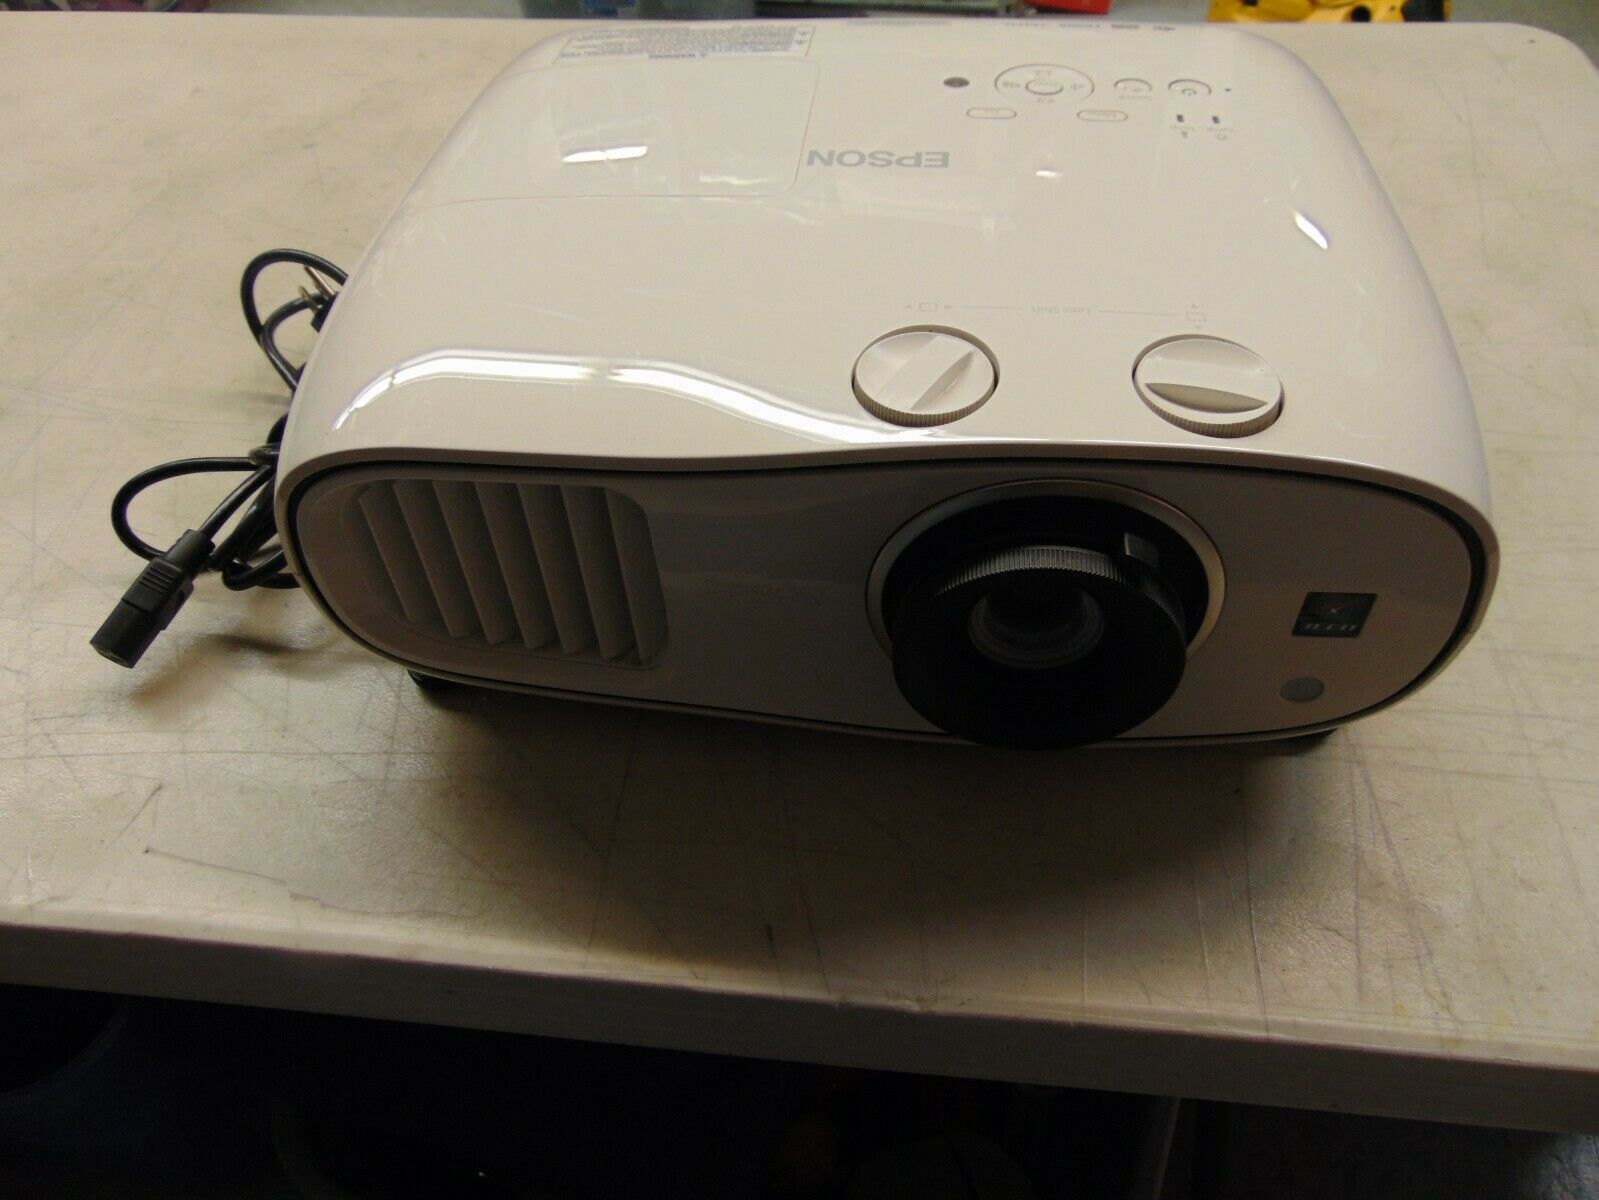 jlin21221 Epson Home Cinema 3500 1080p 3D 3LCD Home Theater Projector